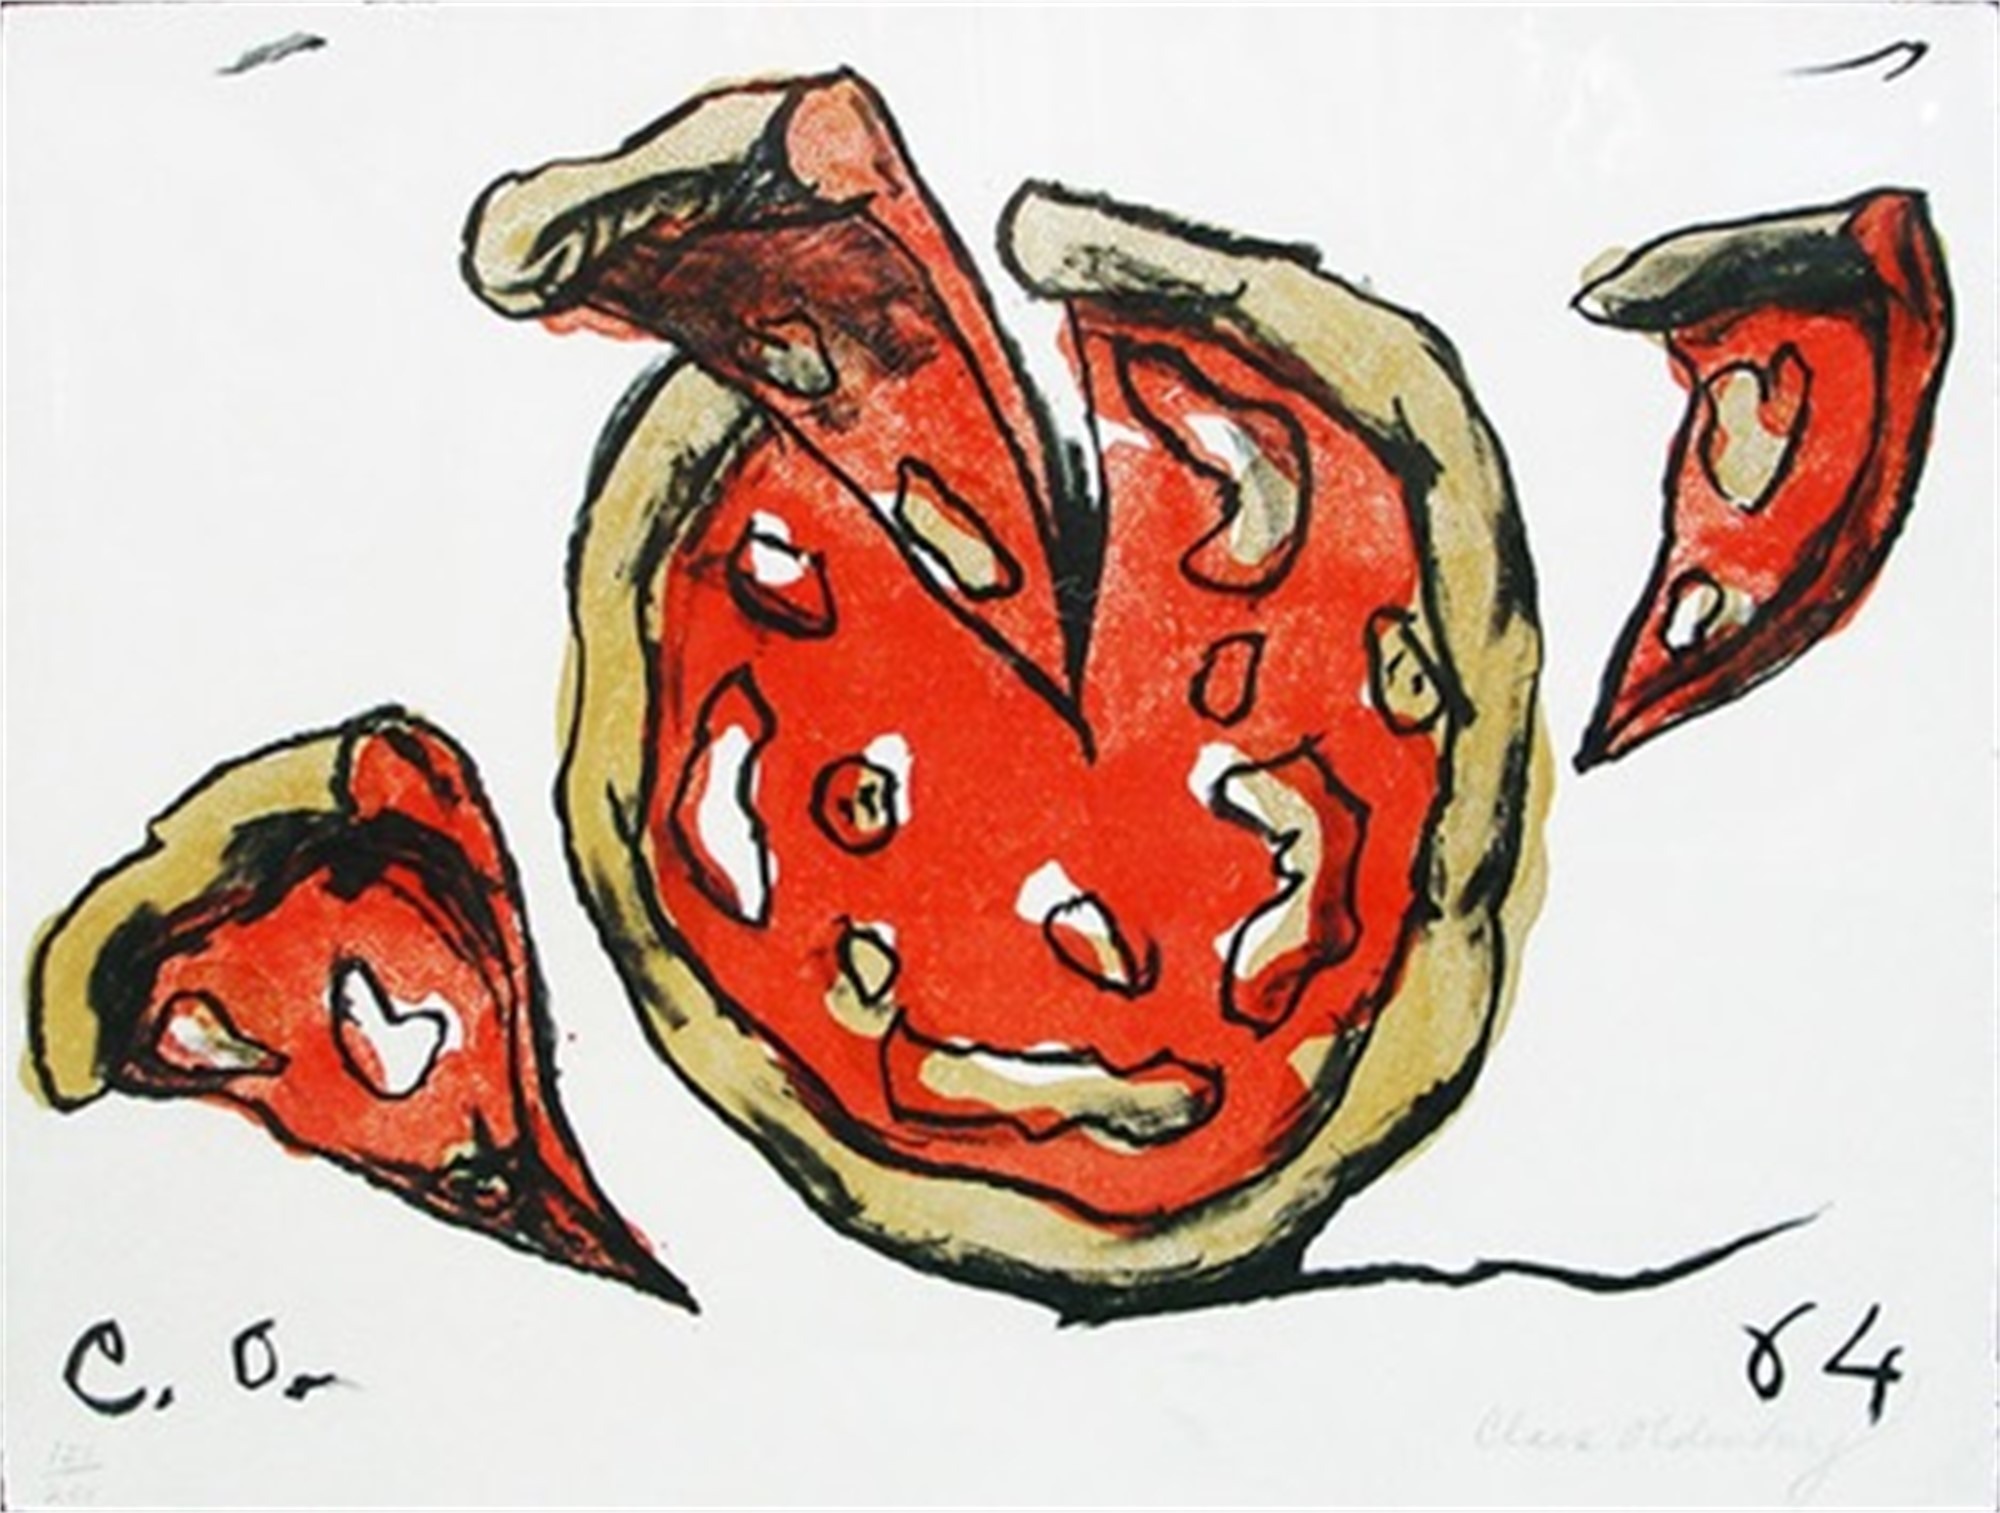 Flying Pizza (from the portfolio New York) by Claes Oldenburg